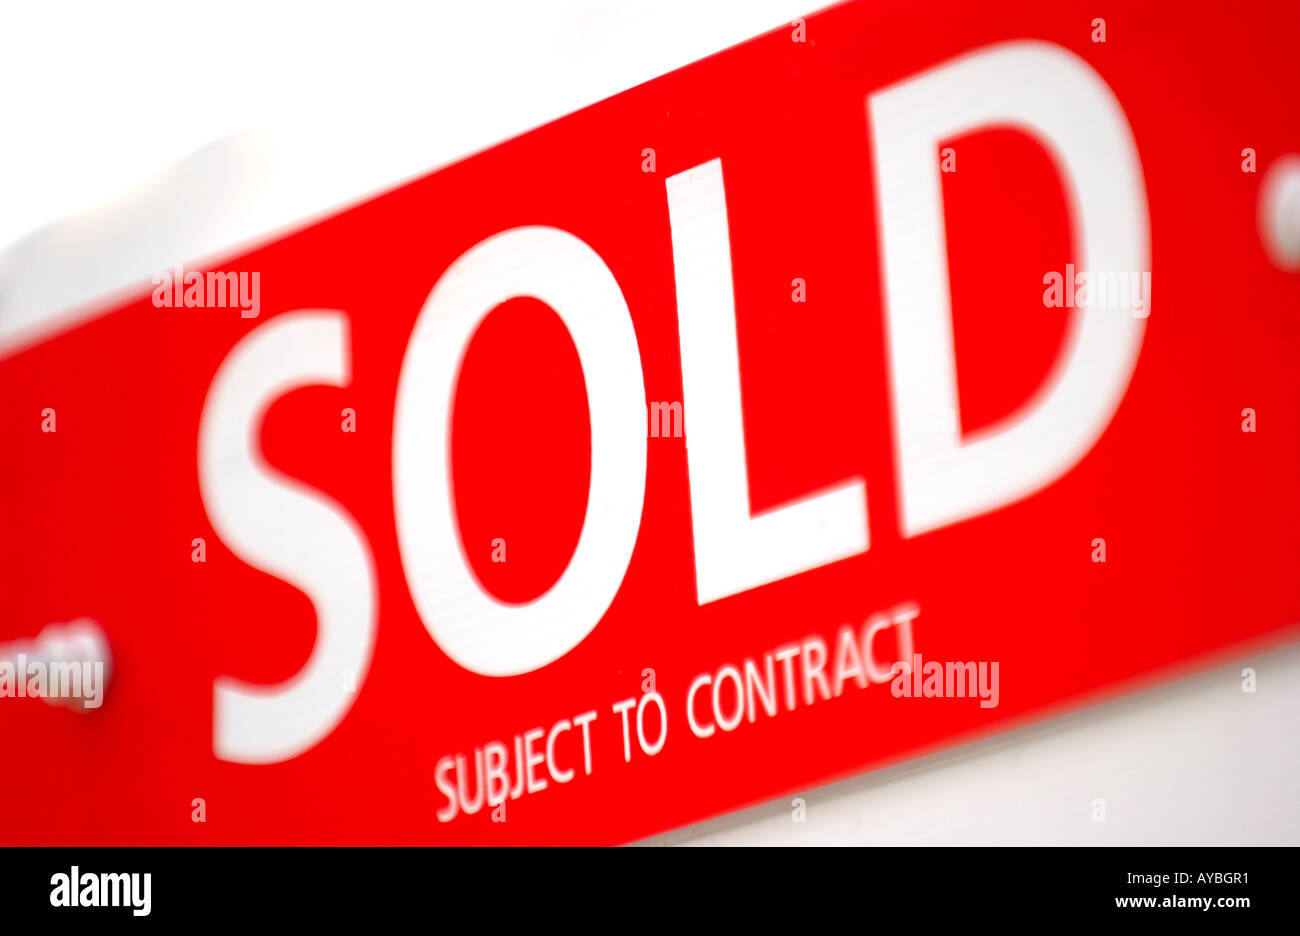 For Sale Sold Sign: Gazump Stock Photos & Gazump Stock Images